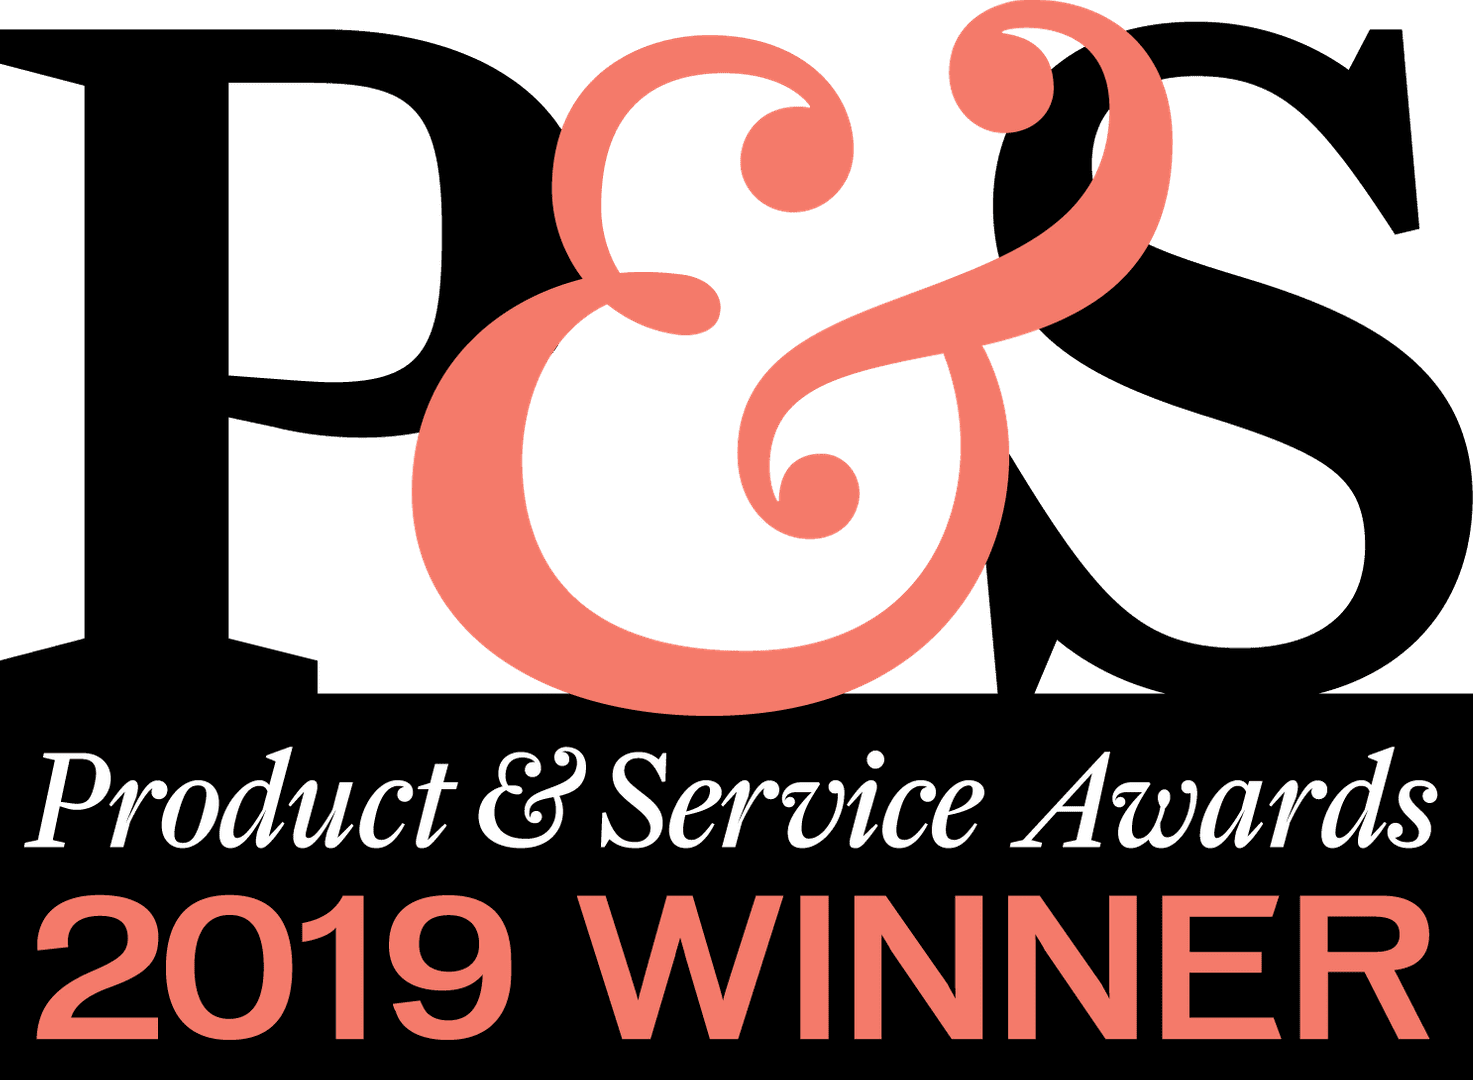 Product & Service Award Winner 2019